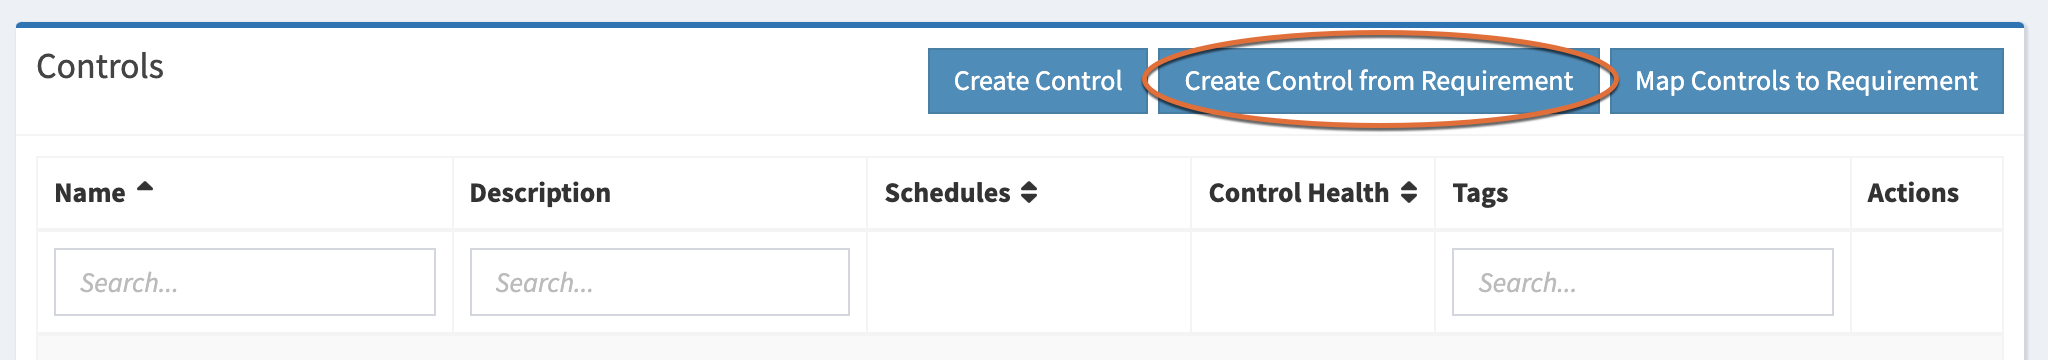 Create Control from Requirement button